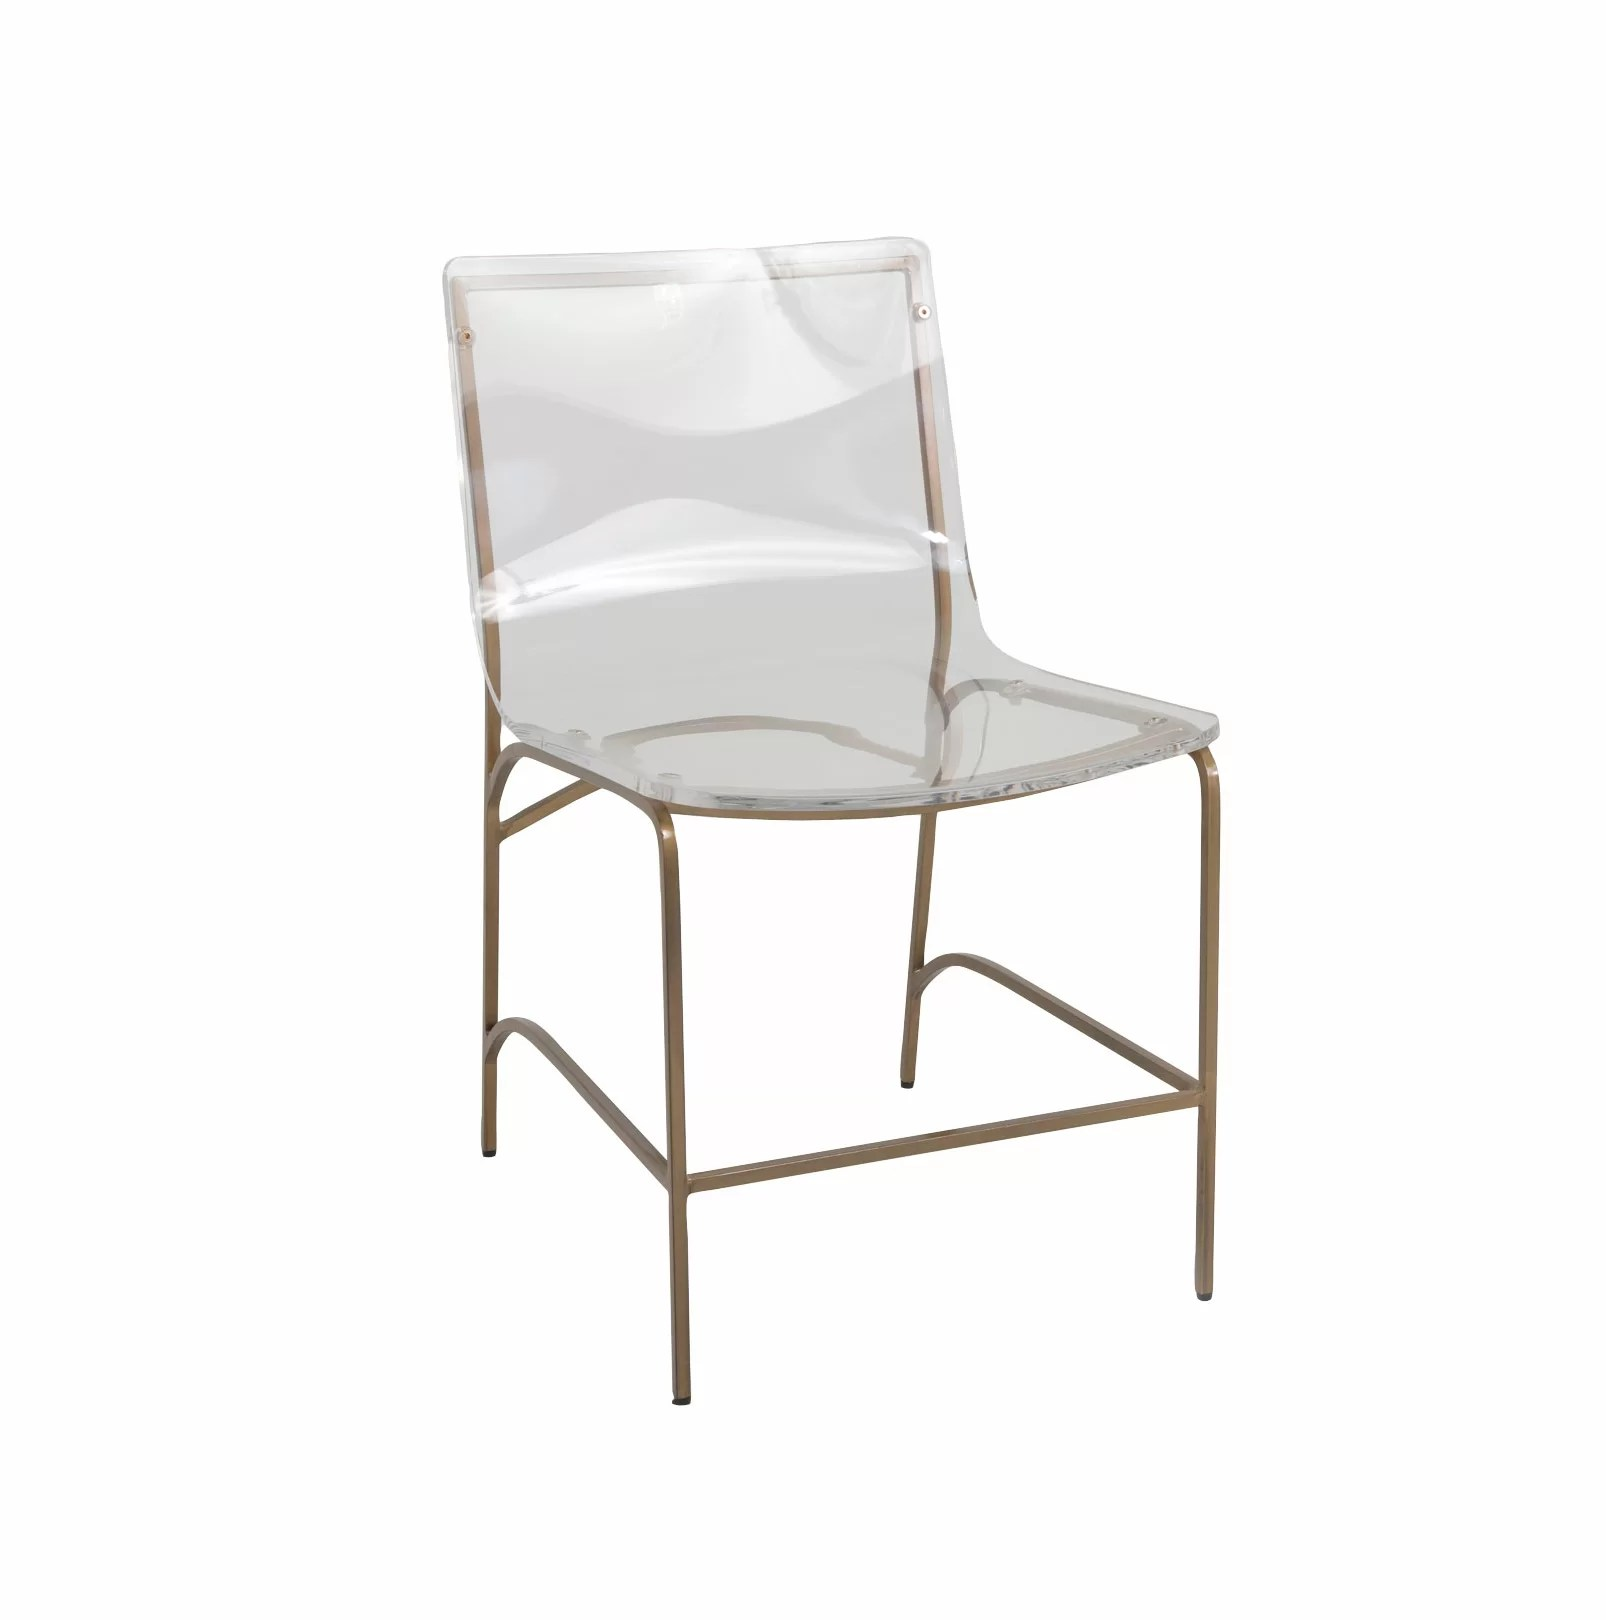 silver metal dining chairs leather chair with ottoman costco gabby penelope wayfair